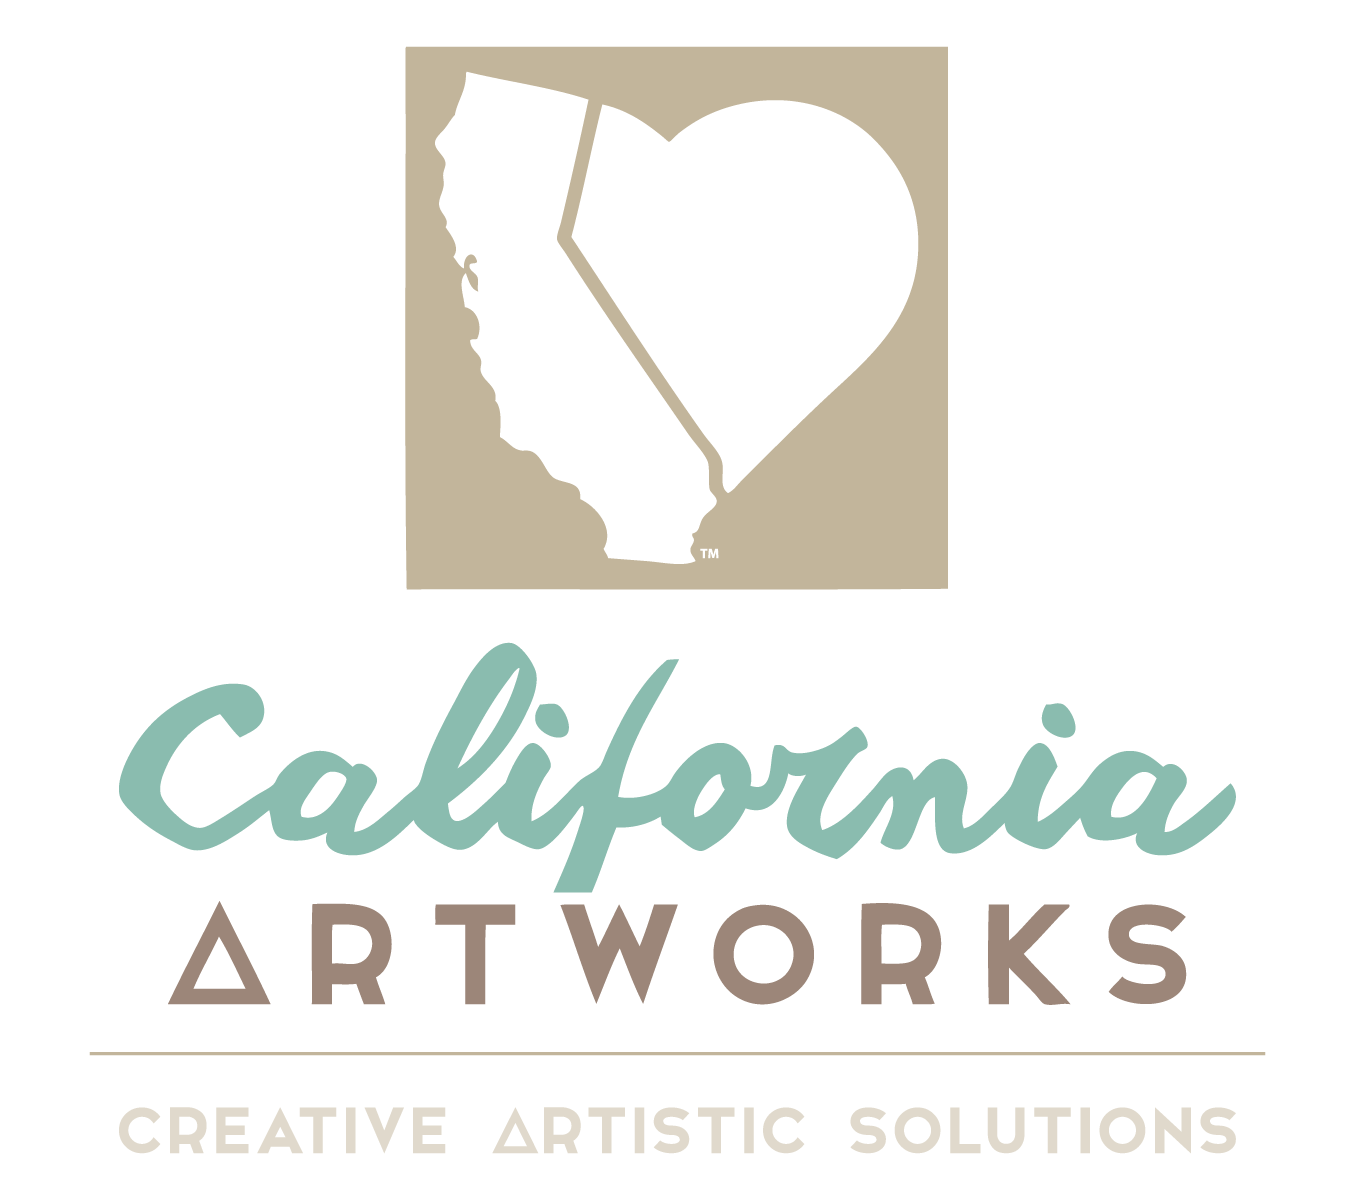 California Artworks